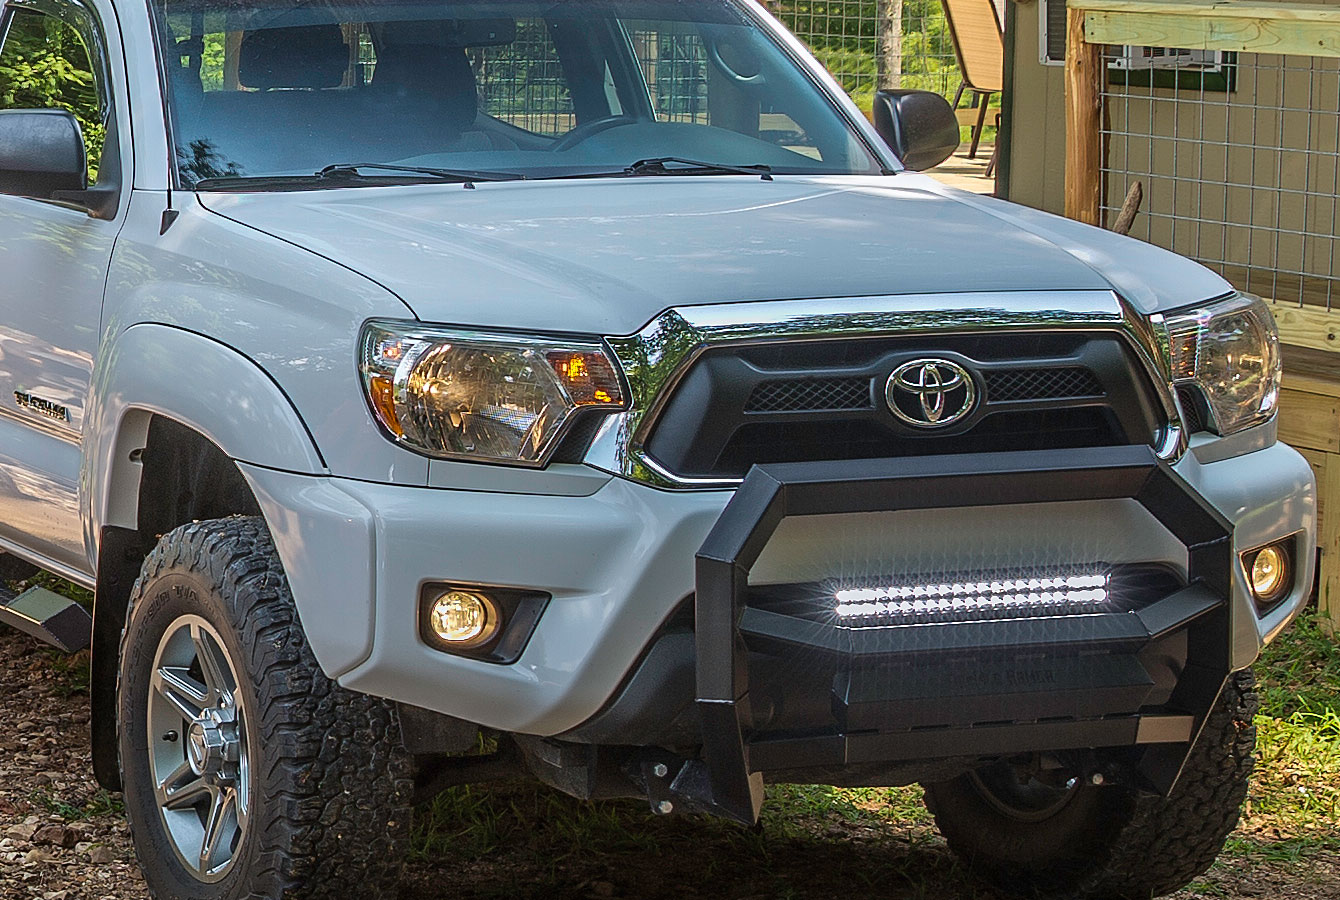 How To Install A Bull Bar On A Toyota Tacoma Turne Word